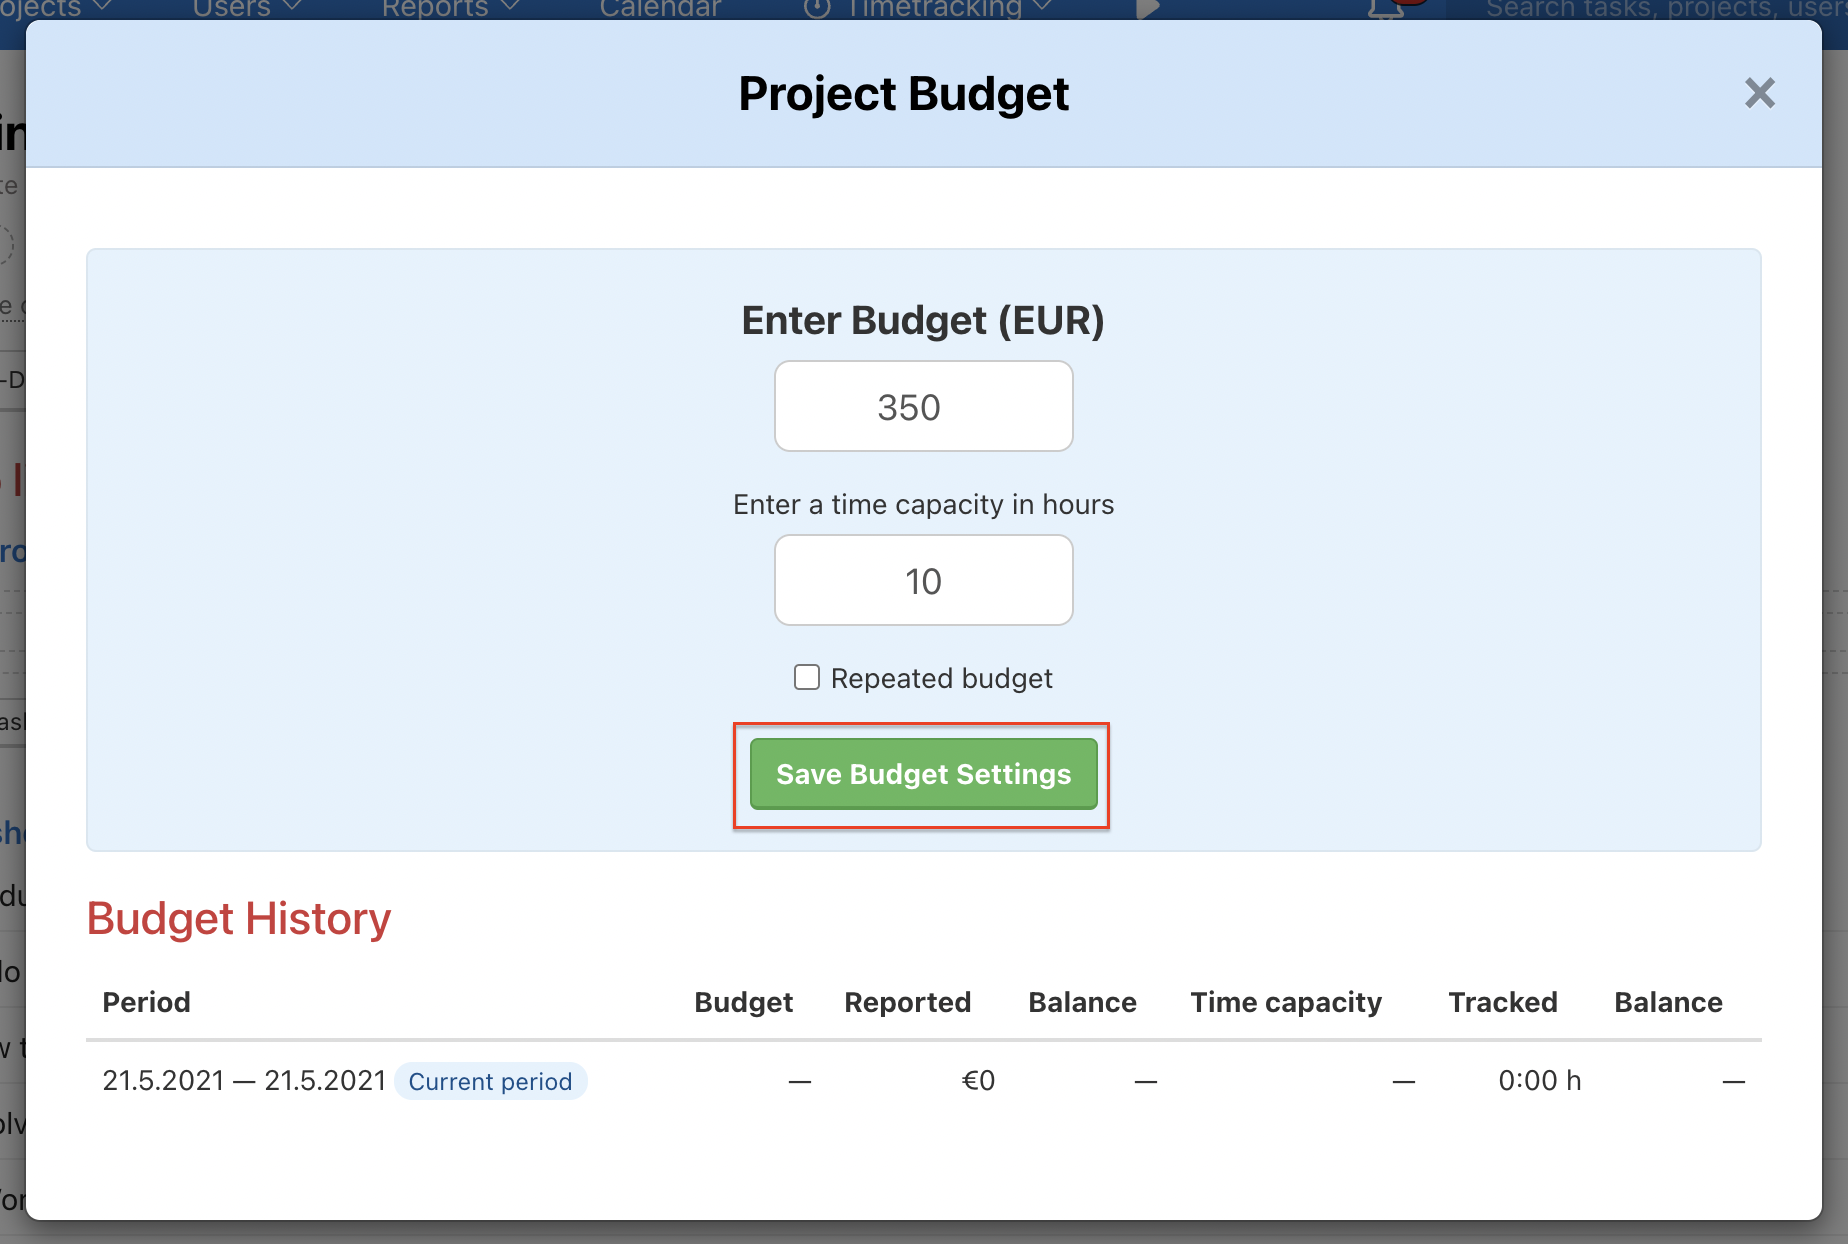 Enter financial budget and time capacity for a project.